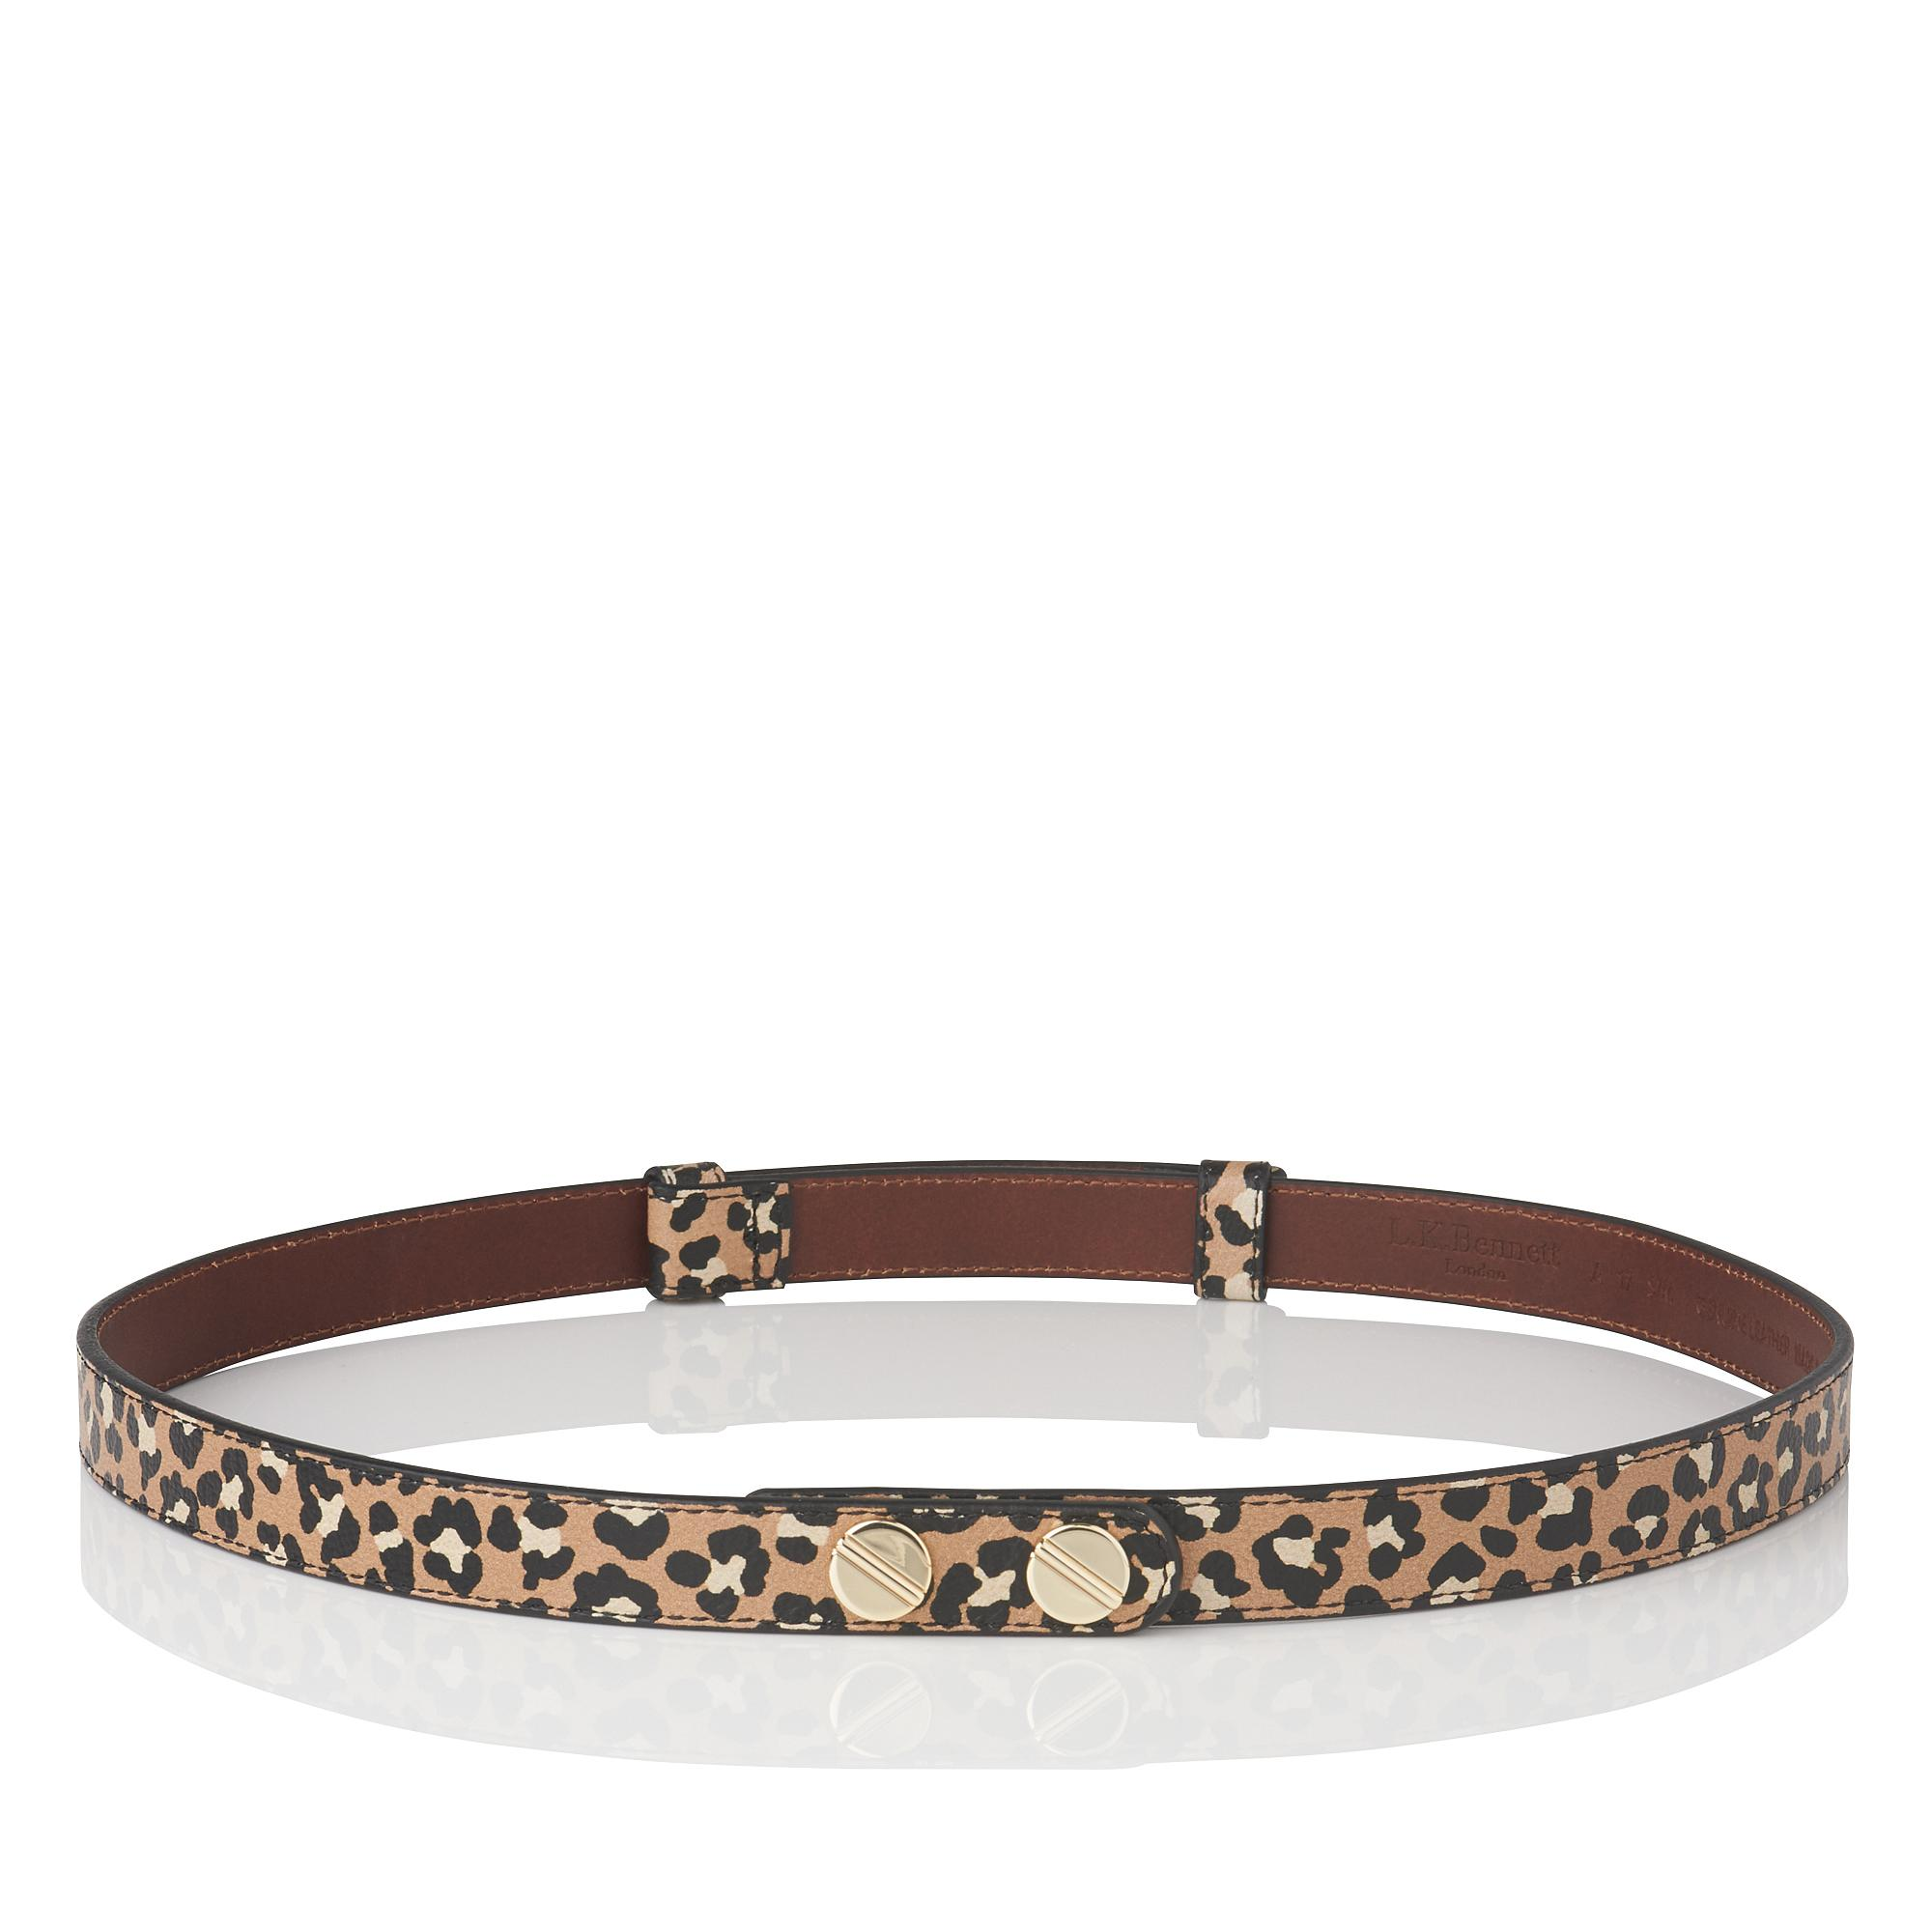 Zahara Animal Print Belt